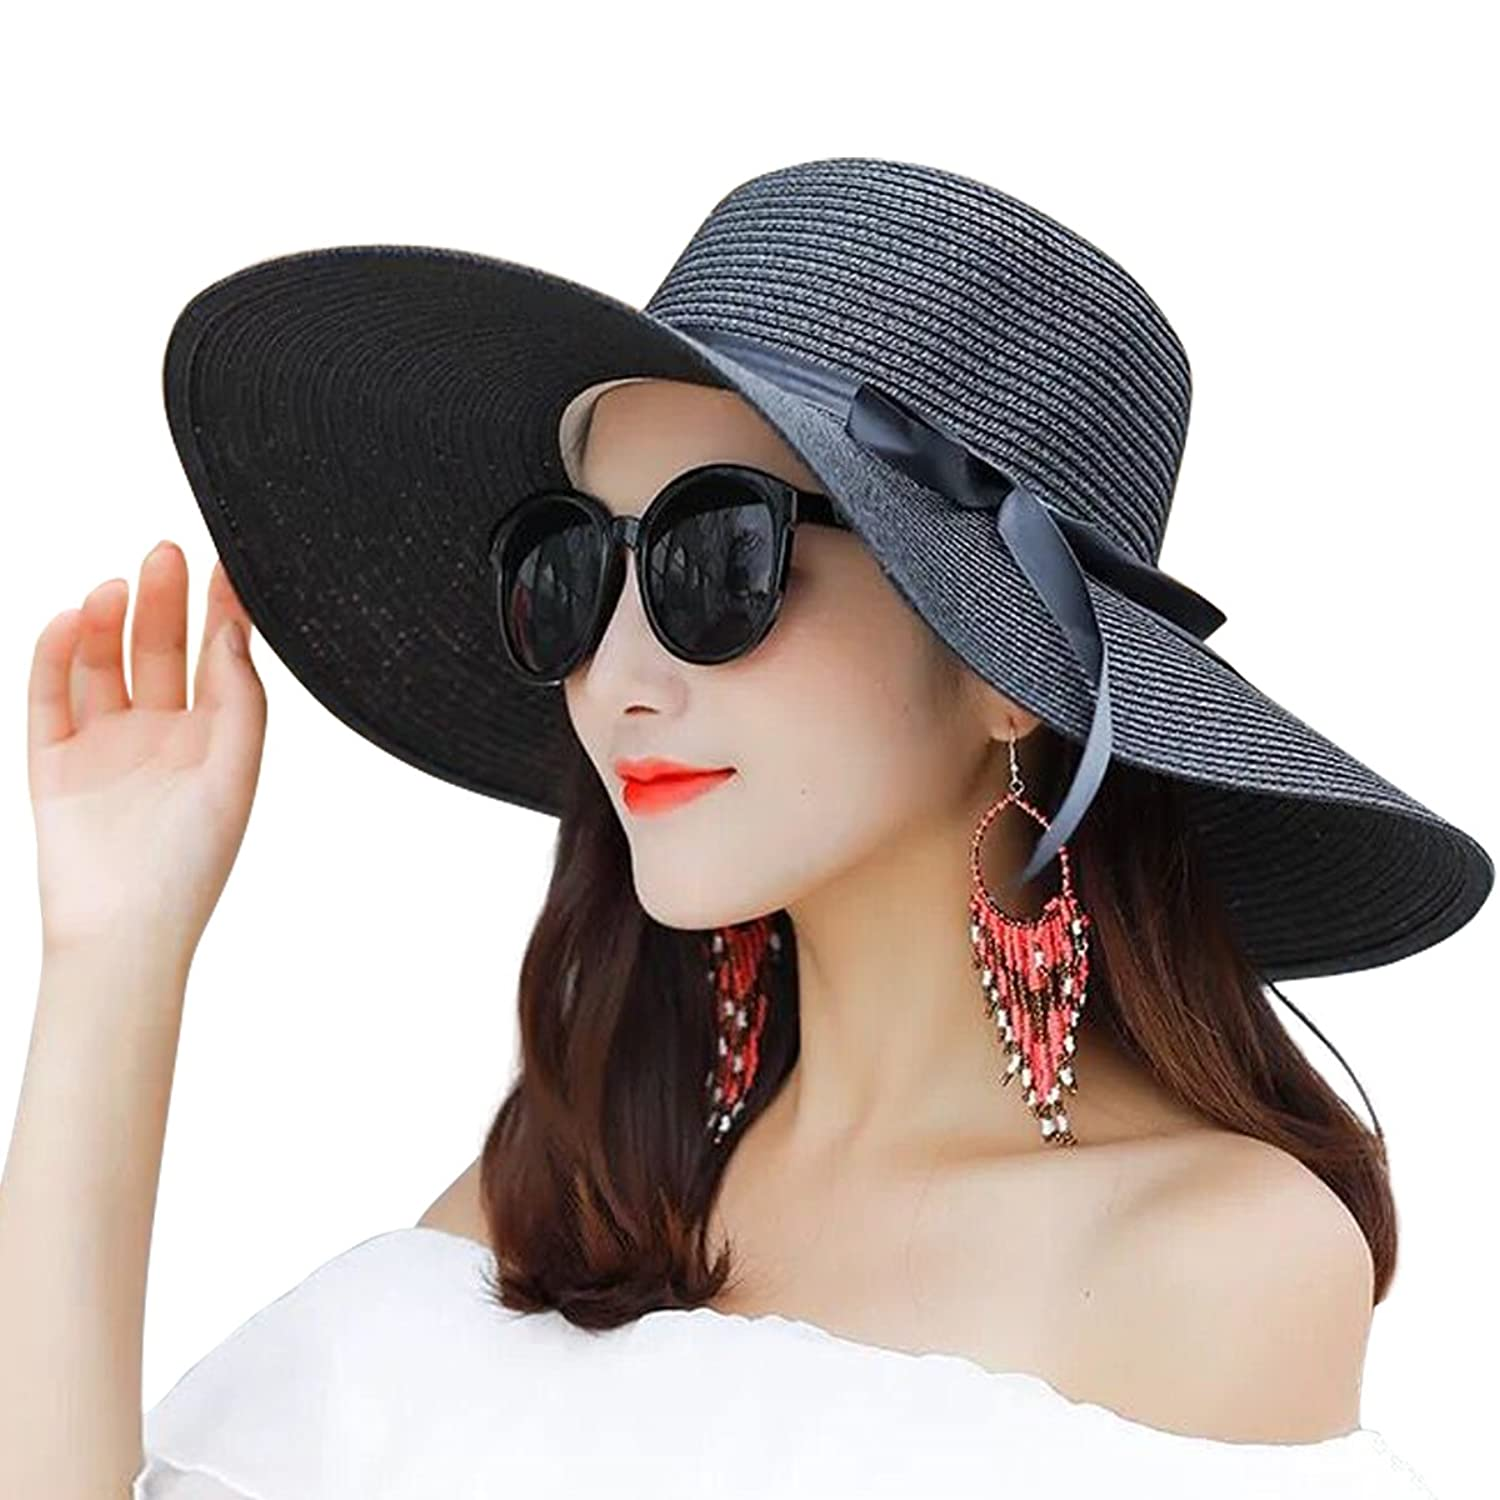 Top quality skin-friendly Straw material. Soft comfortable and breathable  design. Hand washing only. HOT New UV Protection Summer Sun Hats. 1029d77b4334